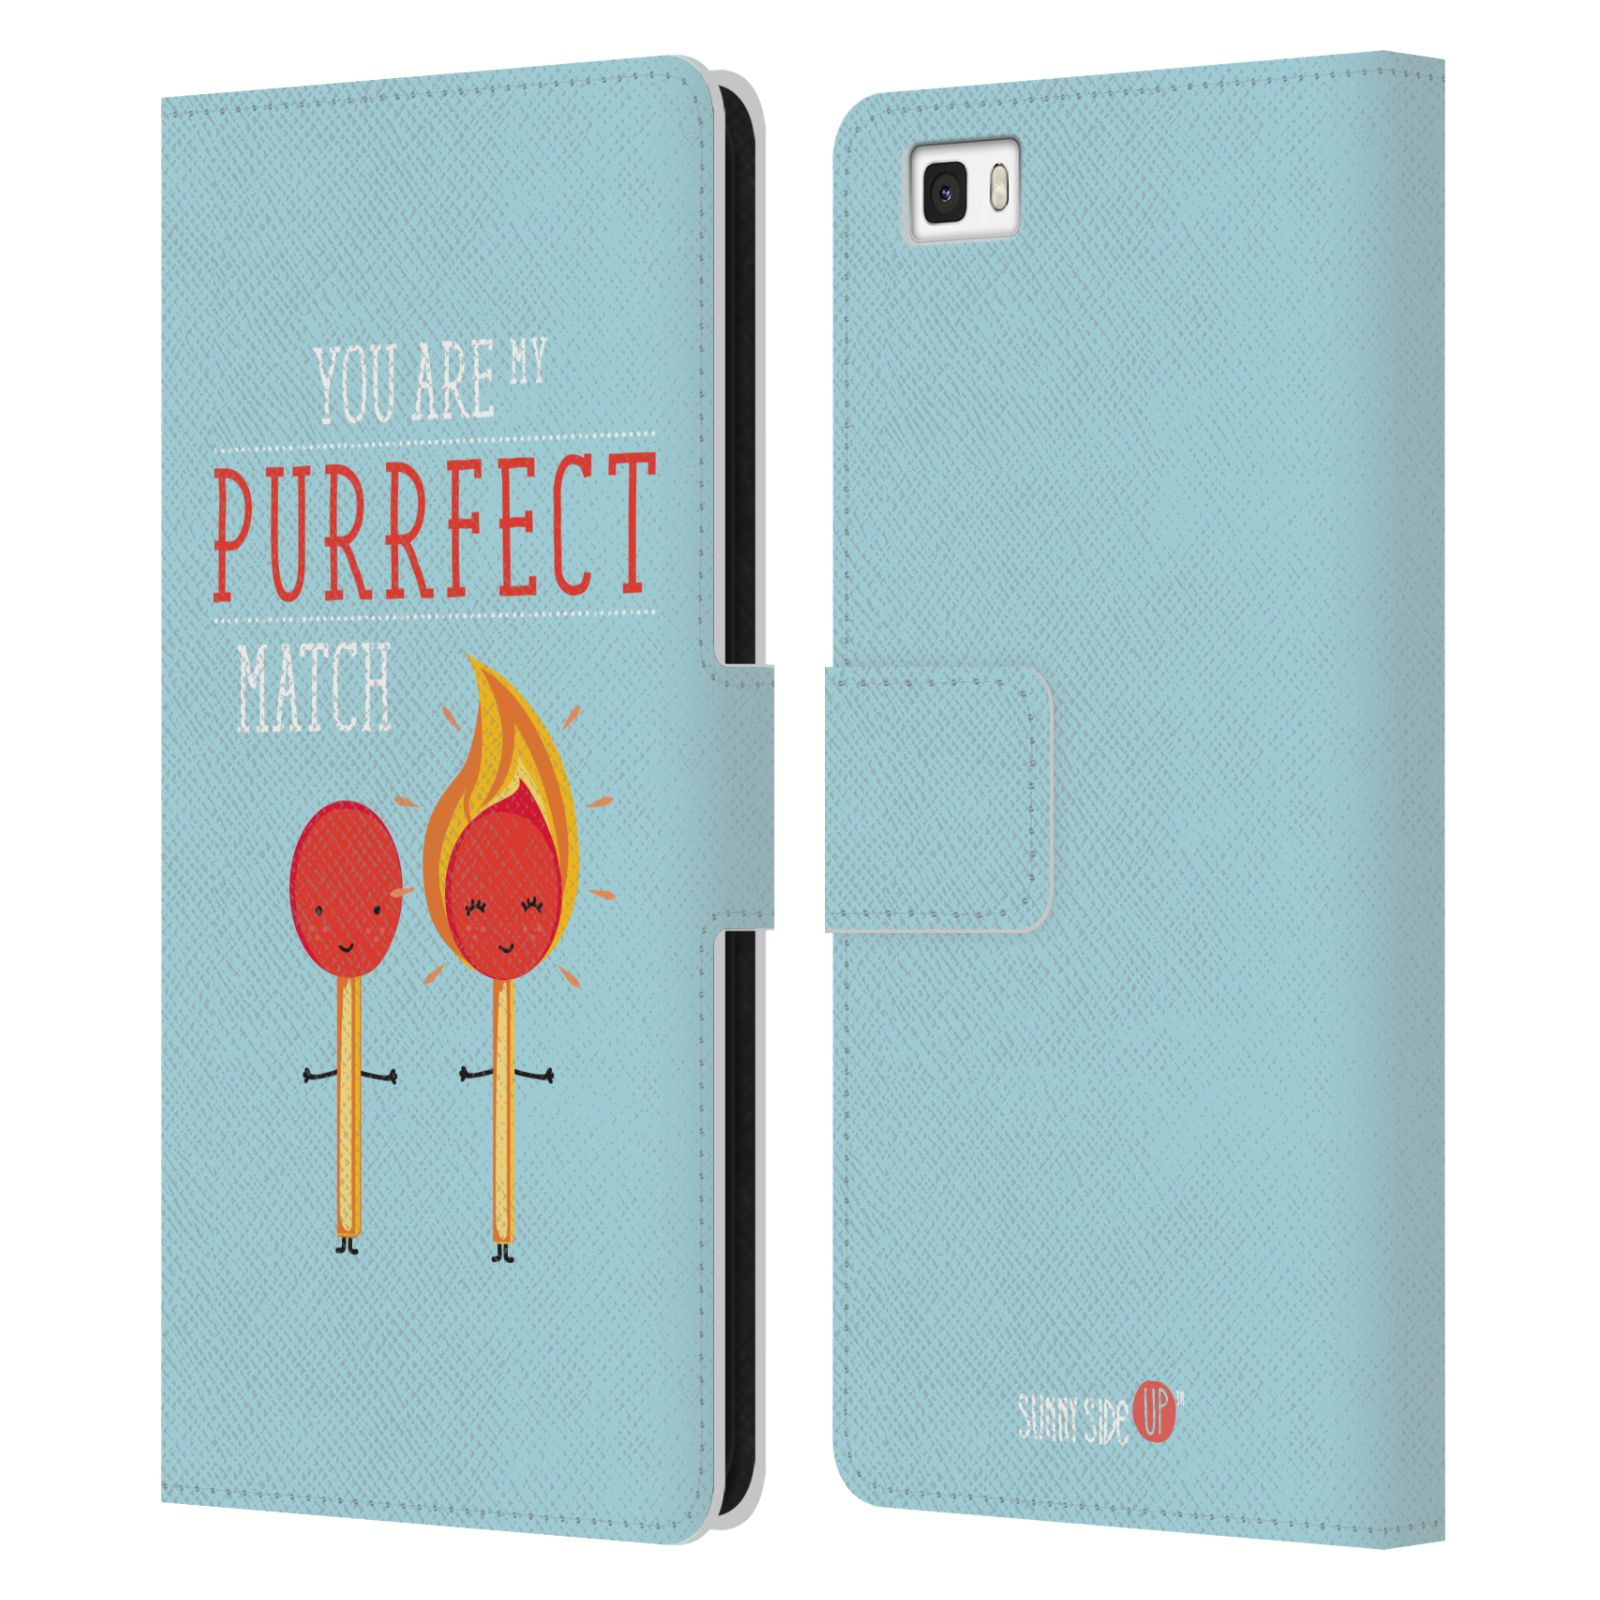 OFFICIAL-MUY-POP-SUNNY-SIDE-UP-MIX-LEATHER-BOOK-WALLET-CASE-FOR-HUAWEI-PHONES-2